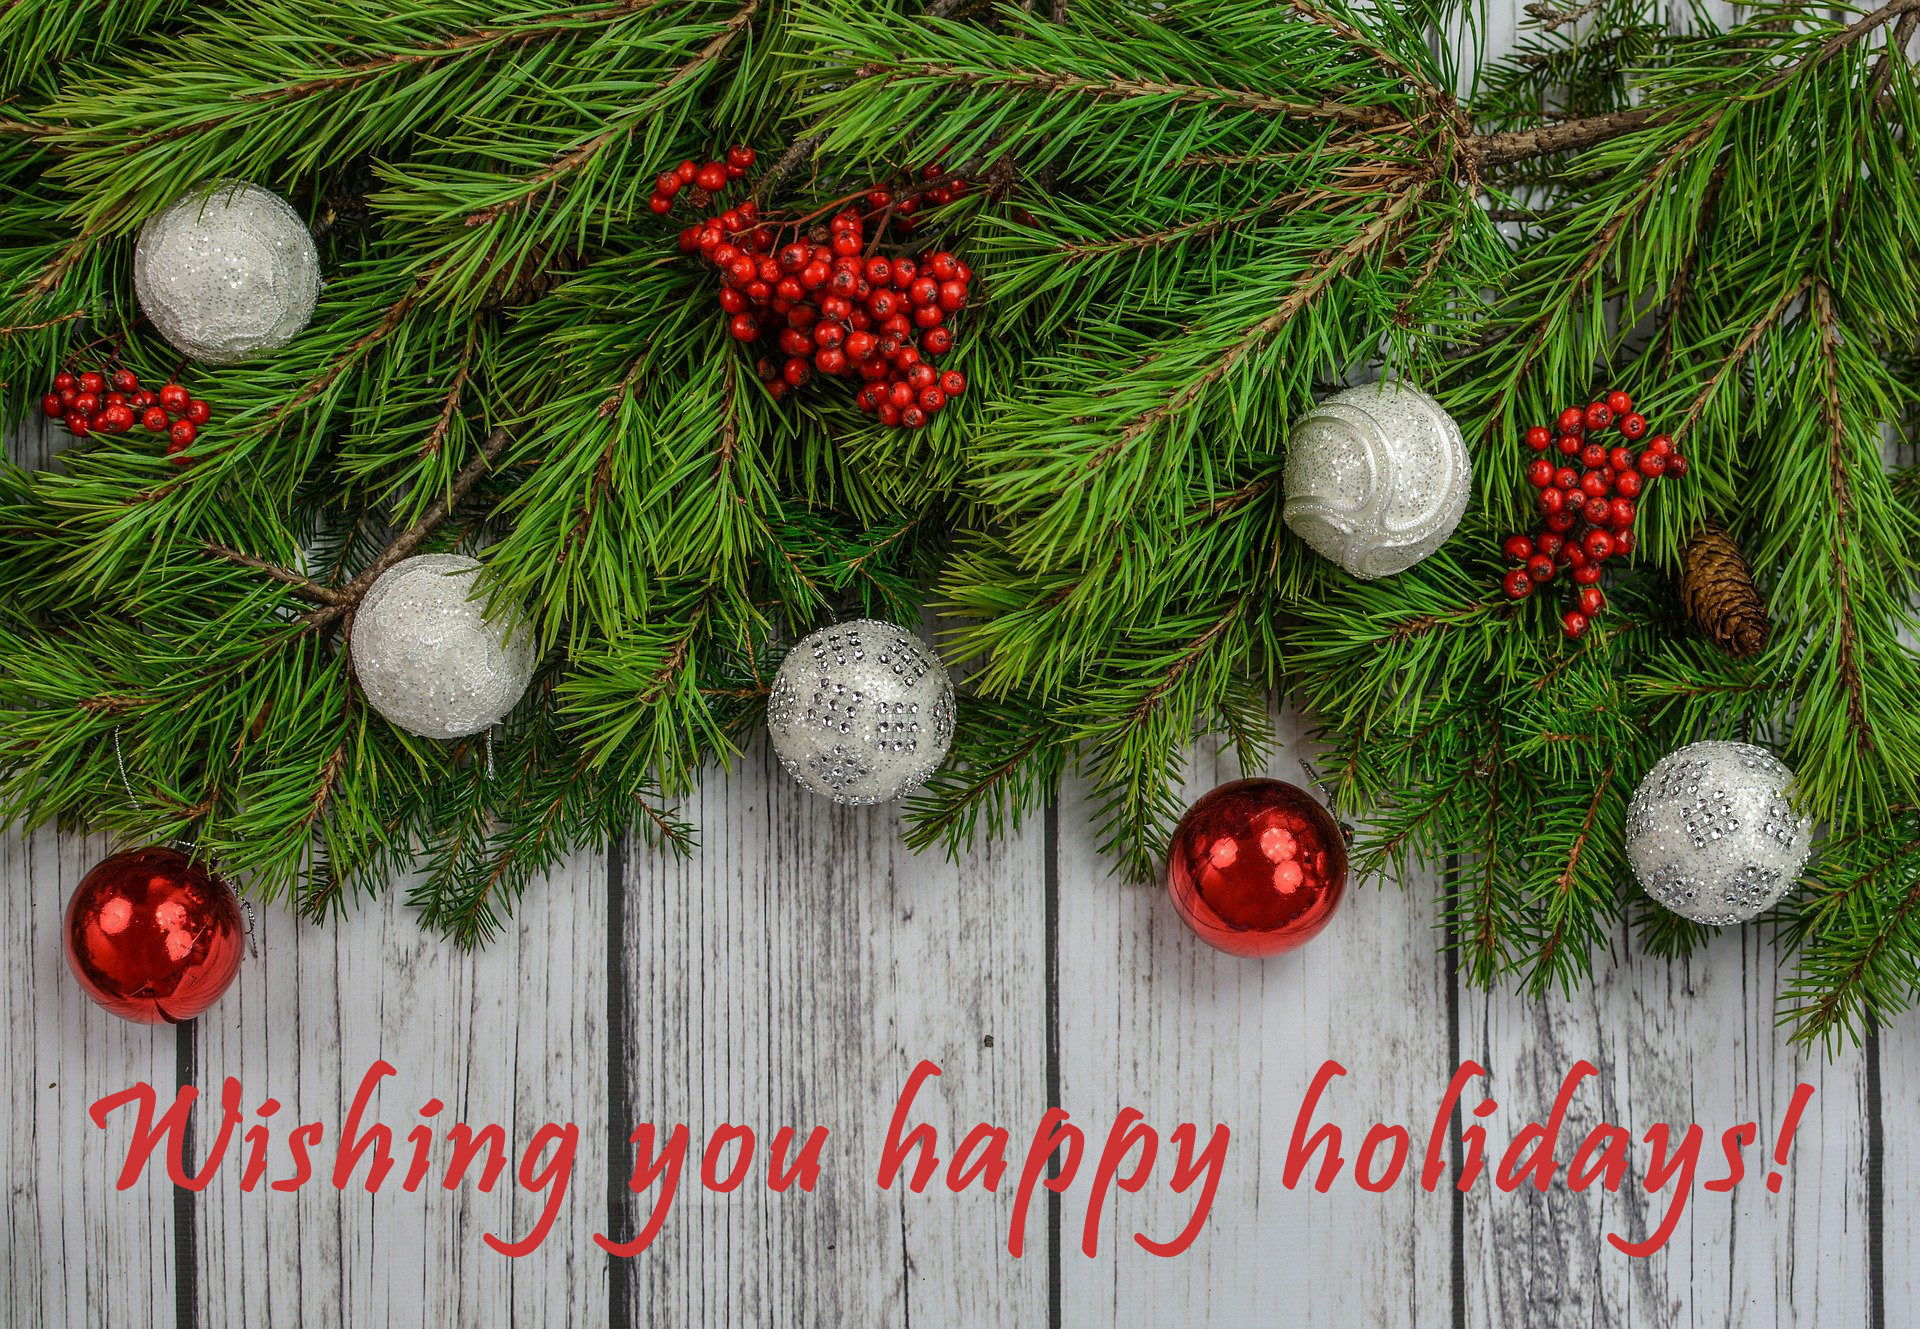 Wishing you happy holidays banner